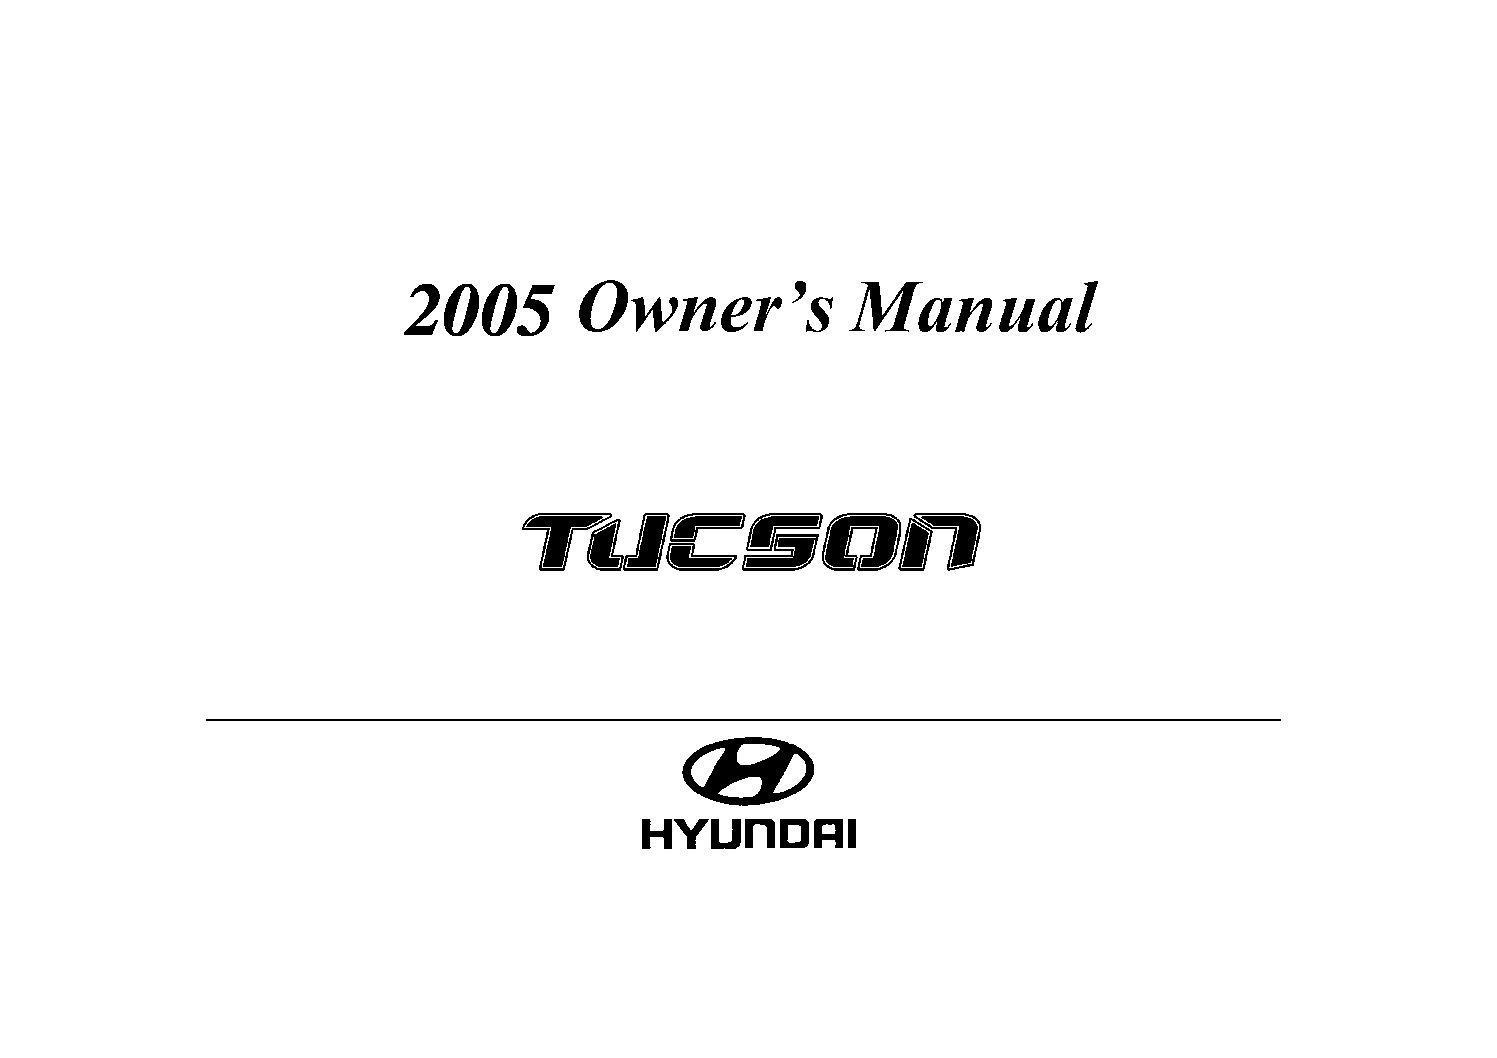 HYUNDAI TUCSON REPAIR MANUAL FREE